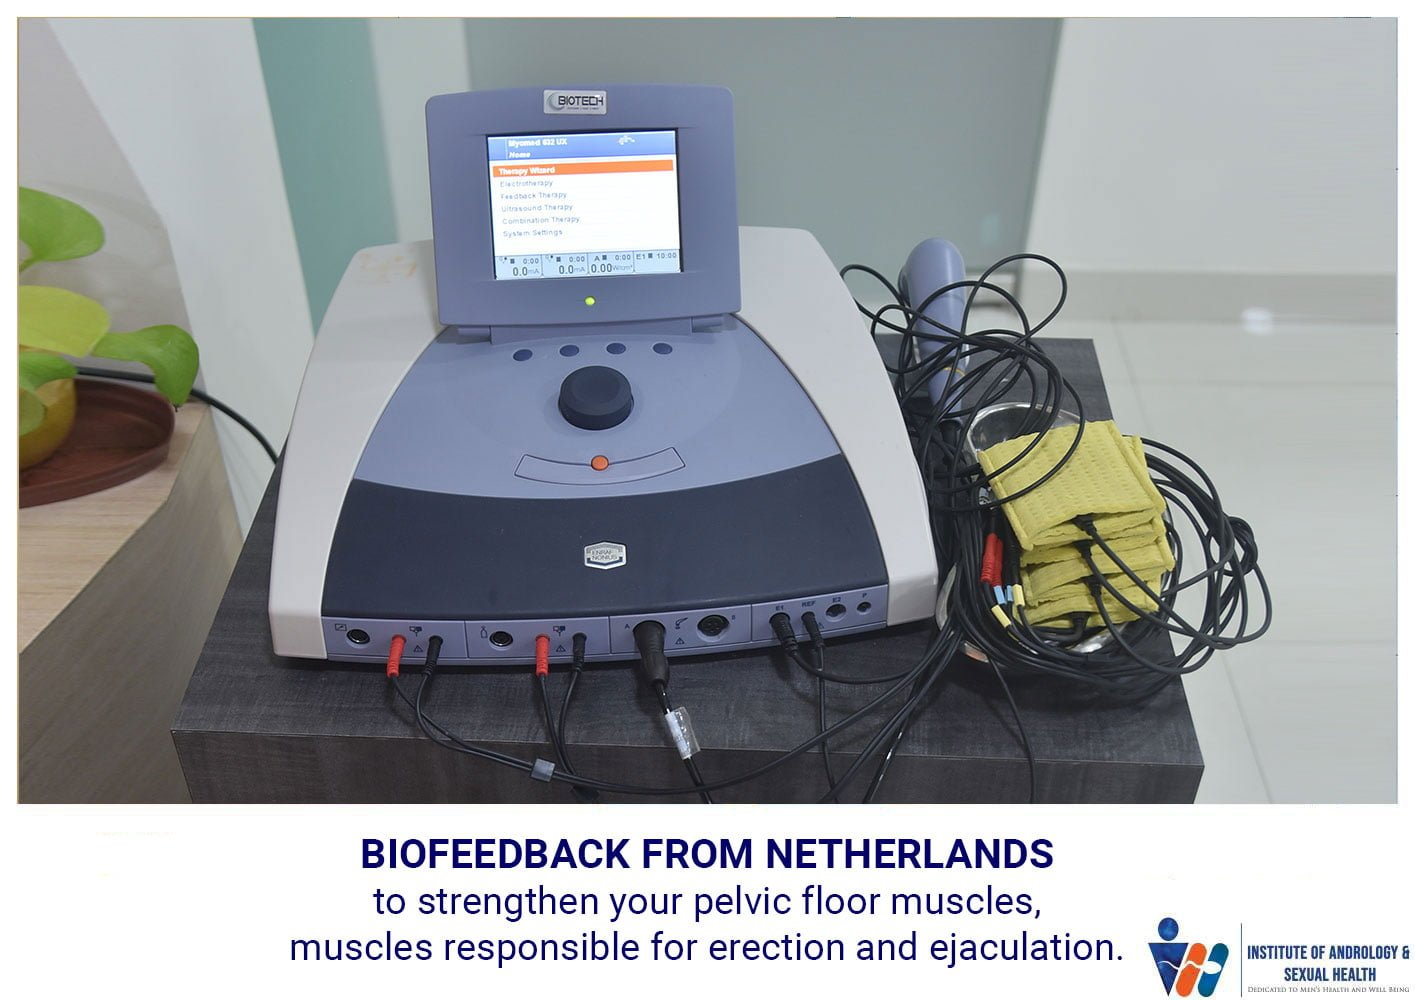 Biofeedback From Netherlands to Strengthen your Pelvic Floor Muscles, Muscles responsible for Erection and Ejaculation.